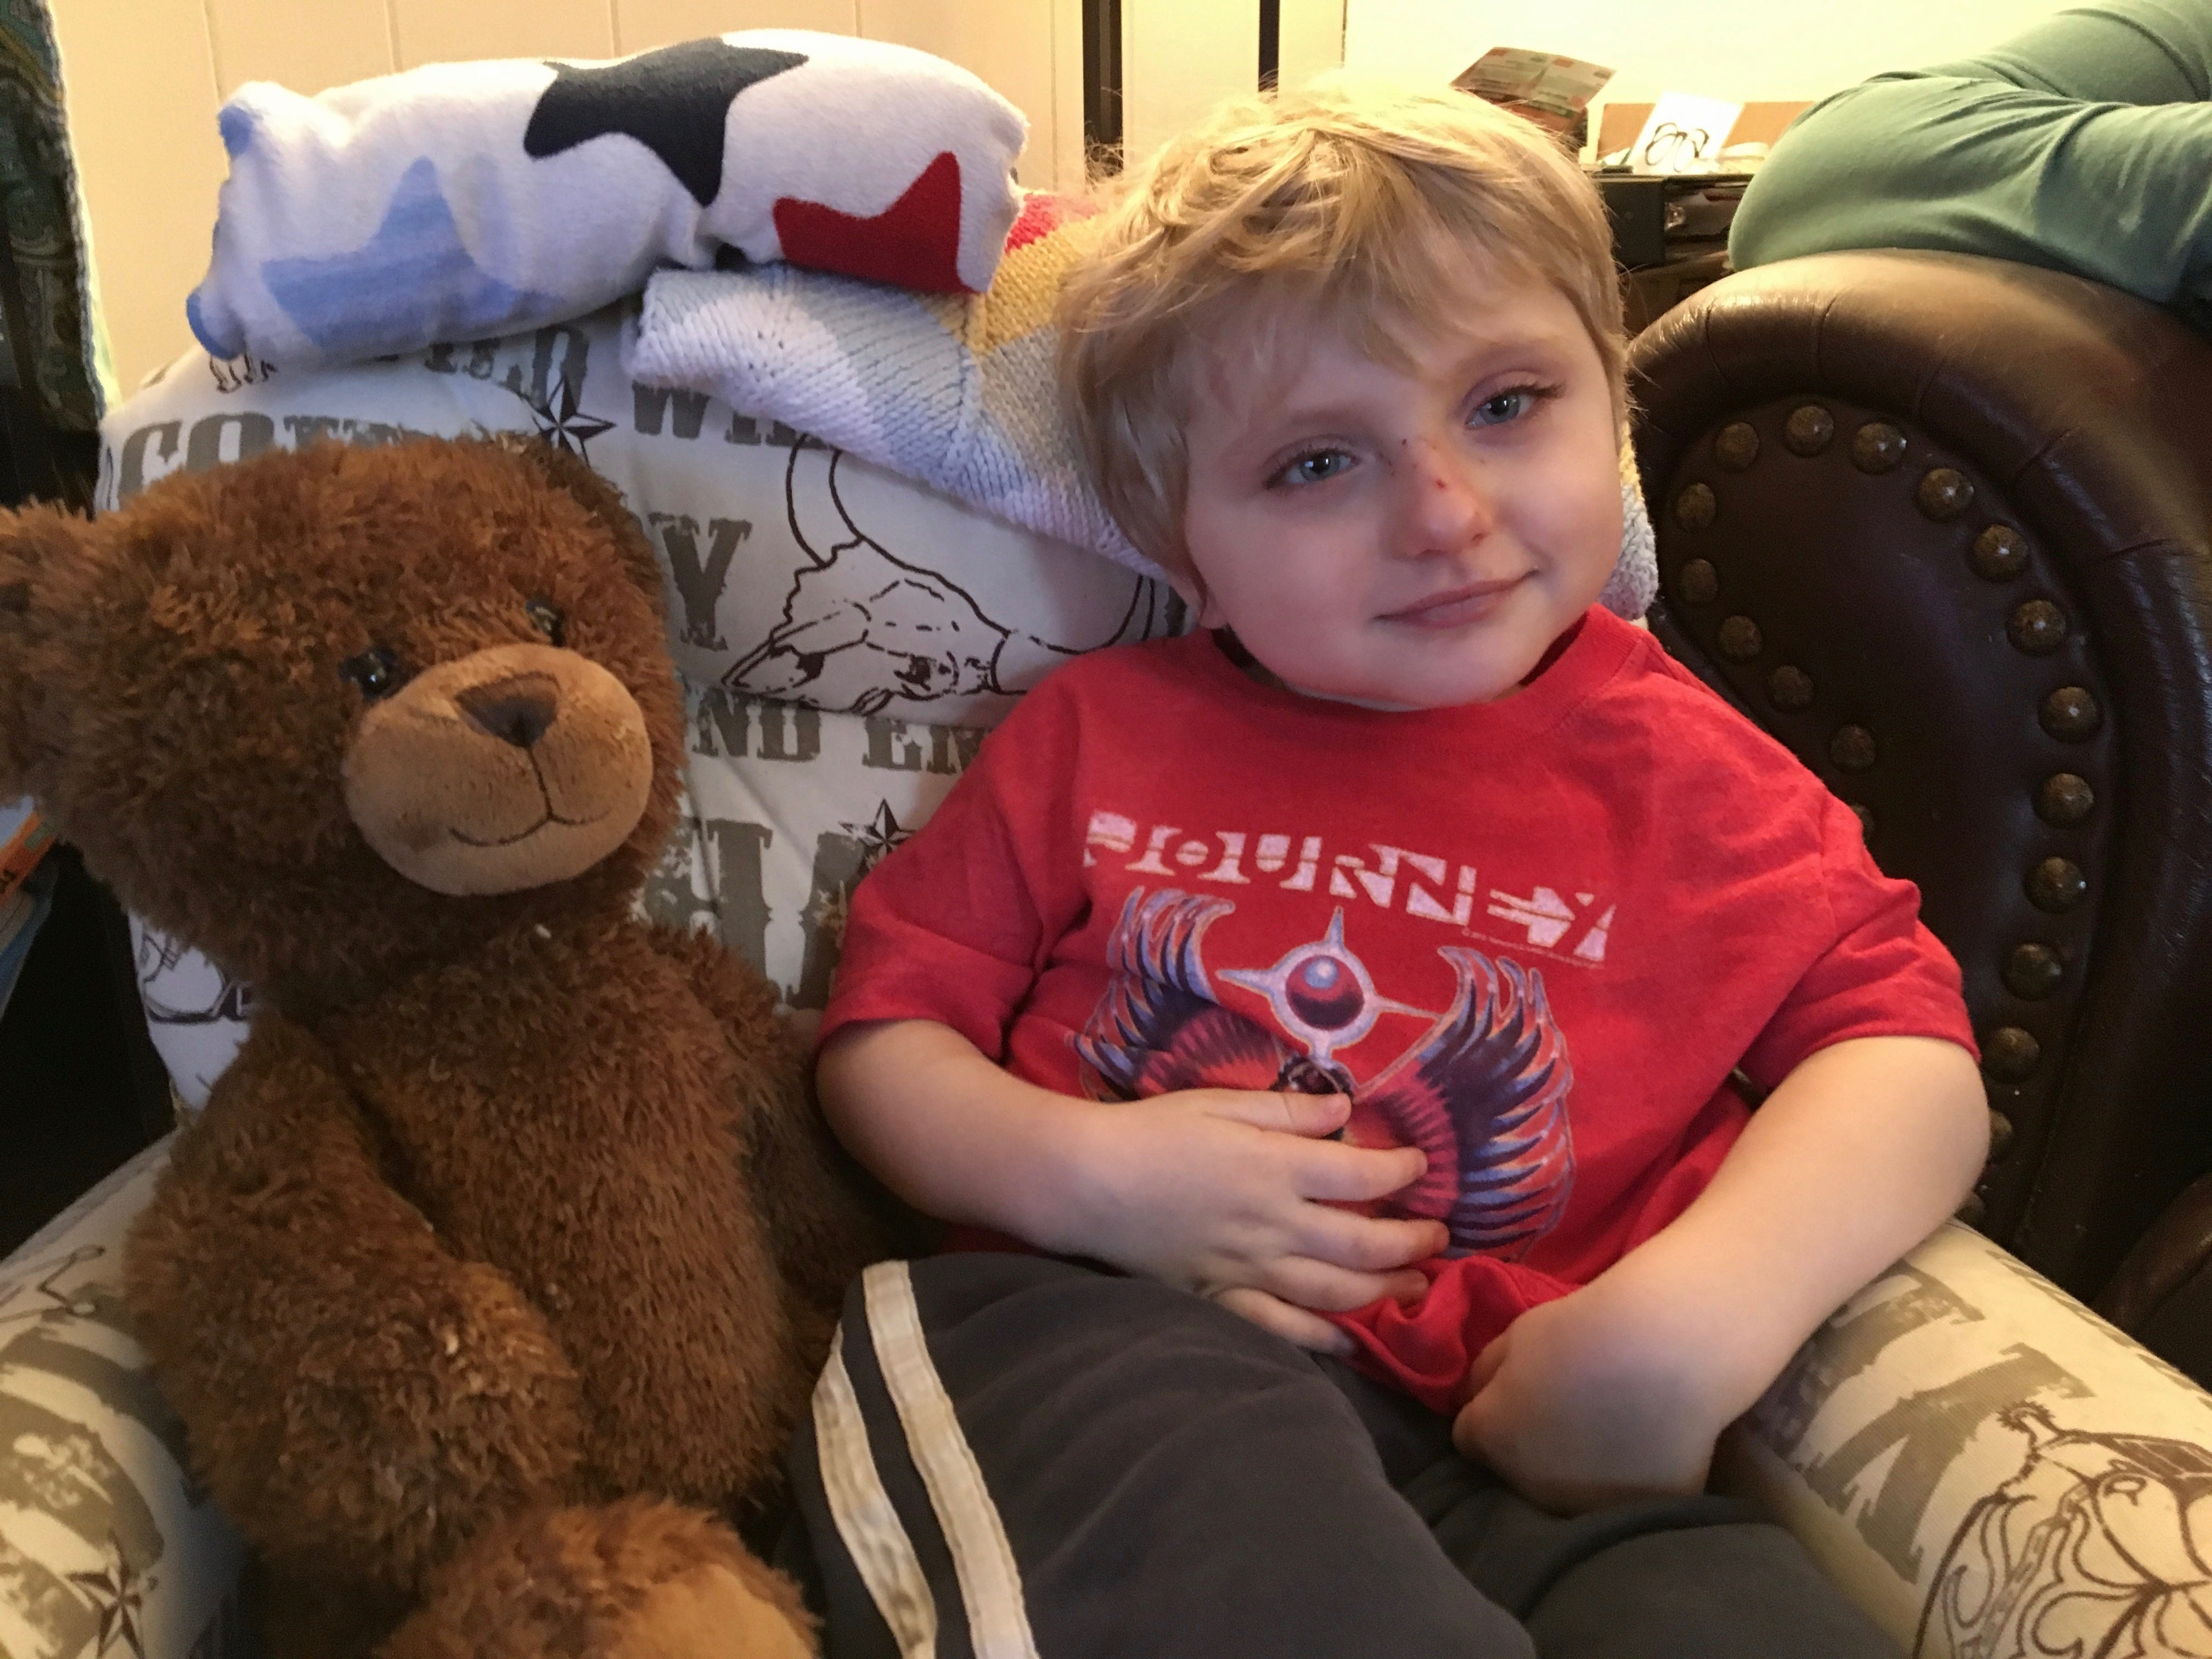 Carson Tugman, 3, in his home in Staunton on Monday, Dec. 31, 2018. Tugman suffers from a progressive neurodevelopmental disorder caused by a pathogenic variant of the MECP2 gene, known as Rett Syndrome.